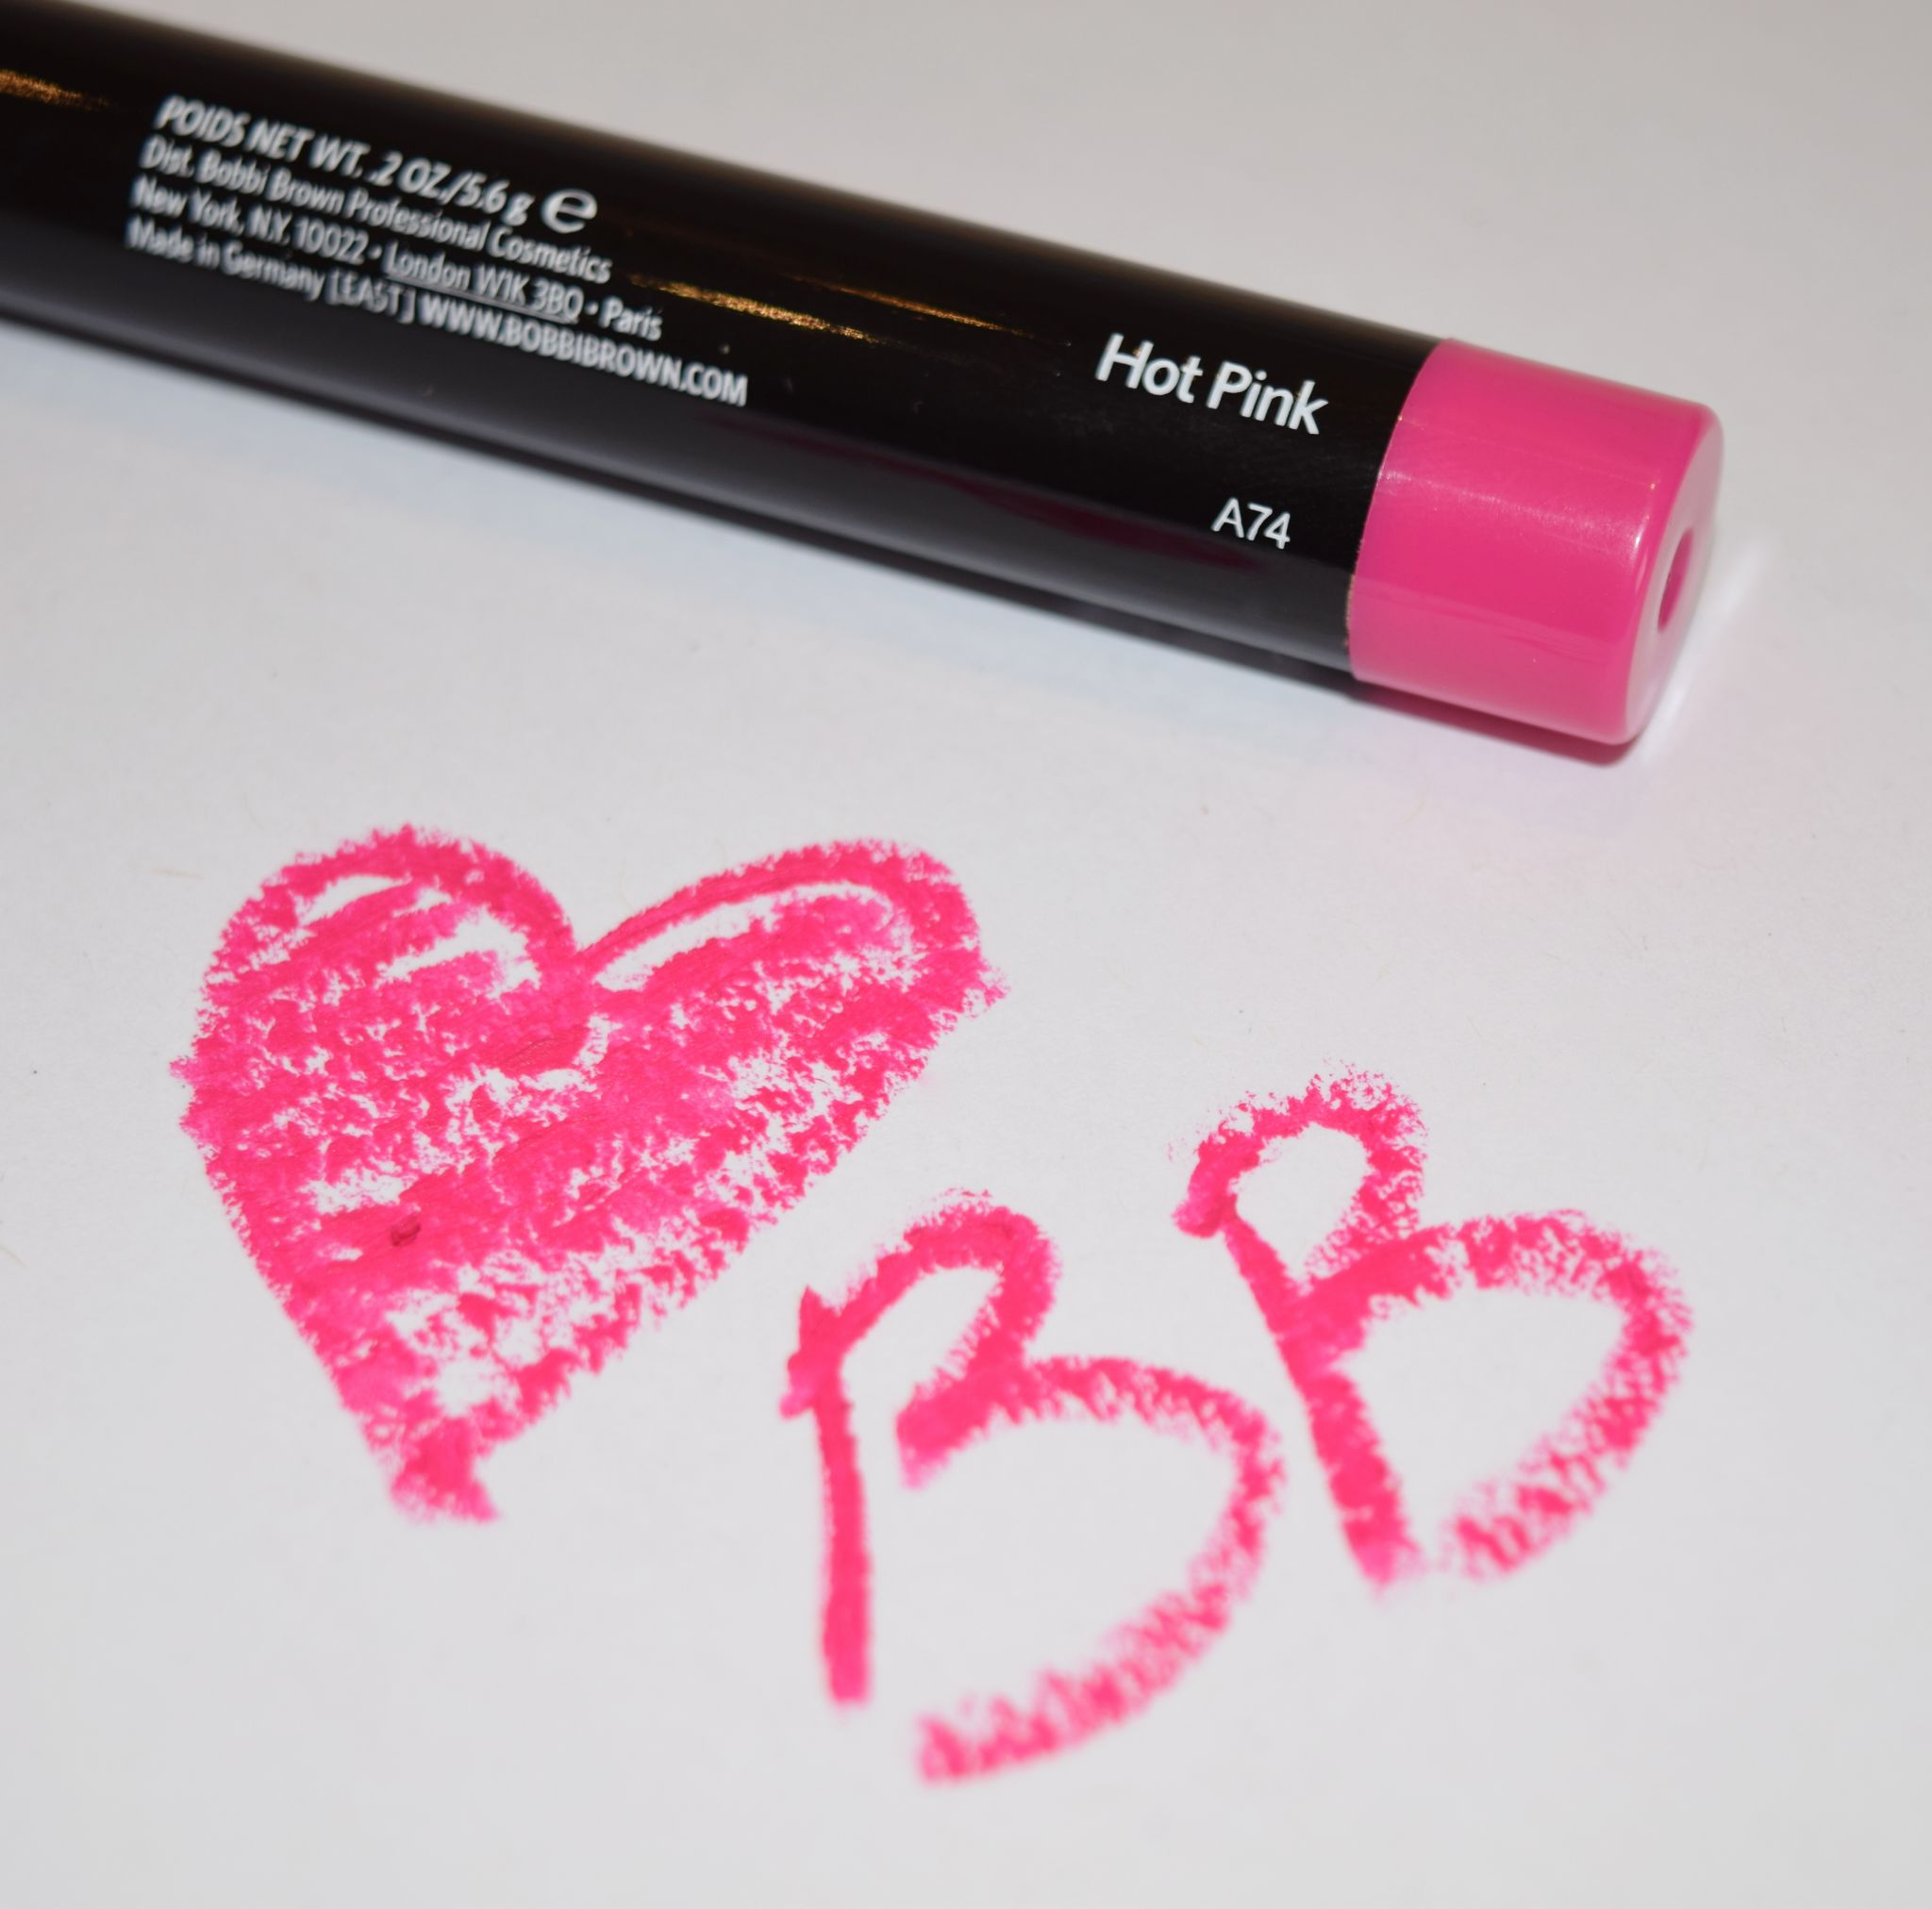 Bobbi Brown Hot PInk Art Stick